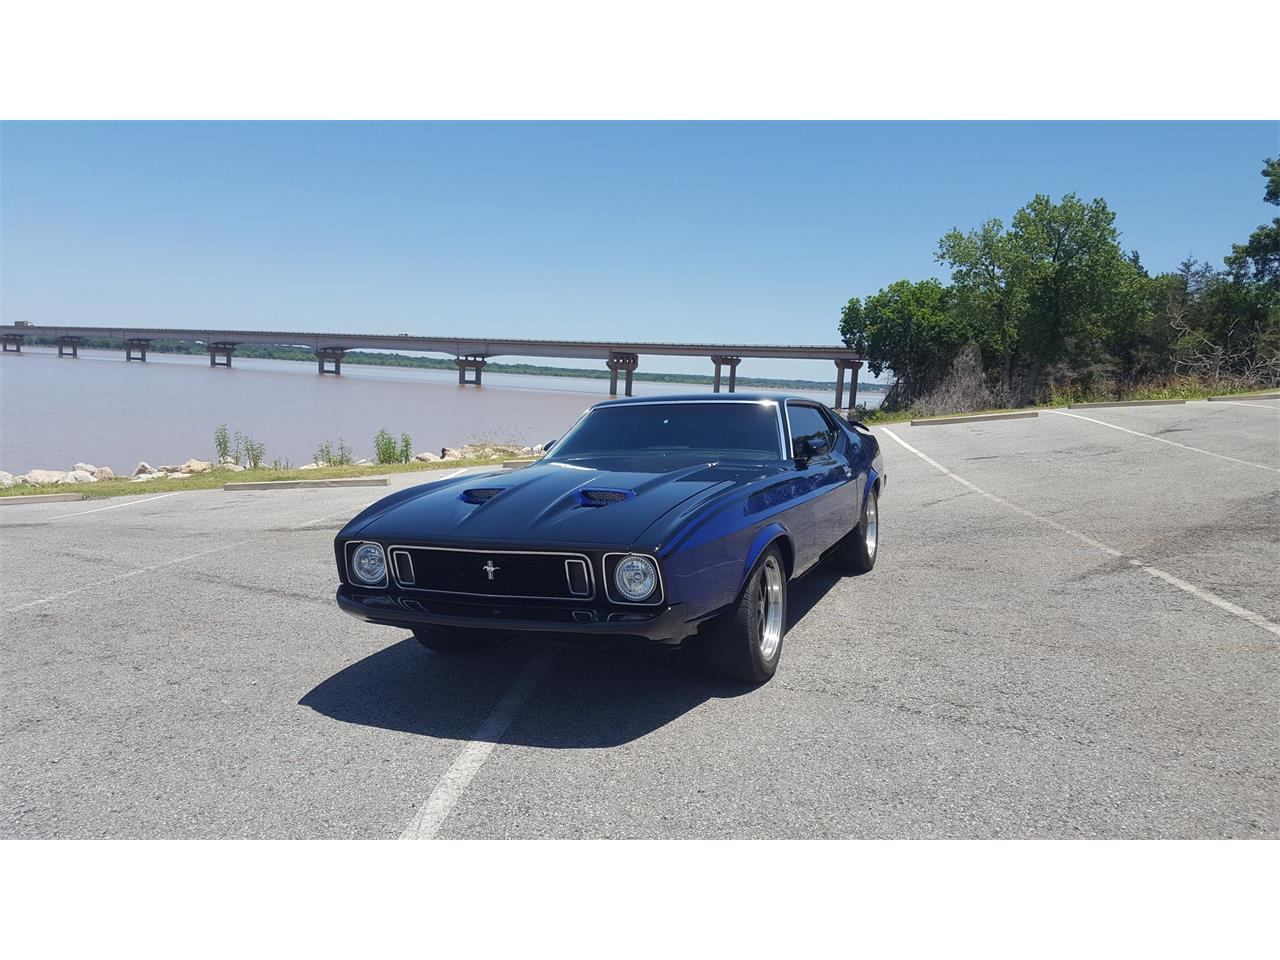 Large Picture of '73 Ford Mustang Mach 1 located in Gordonville Texas - $45,000.00 Offered by a Private Seller - LBYV